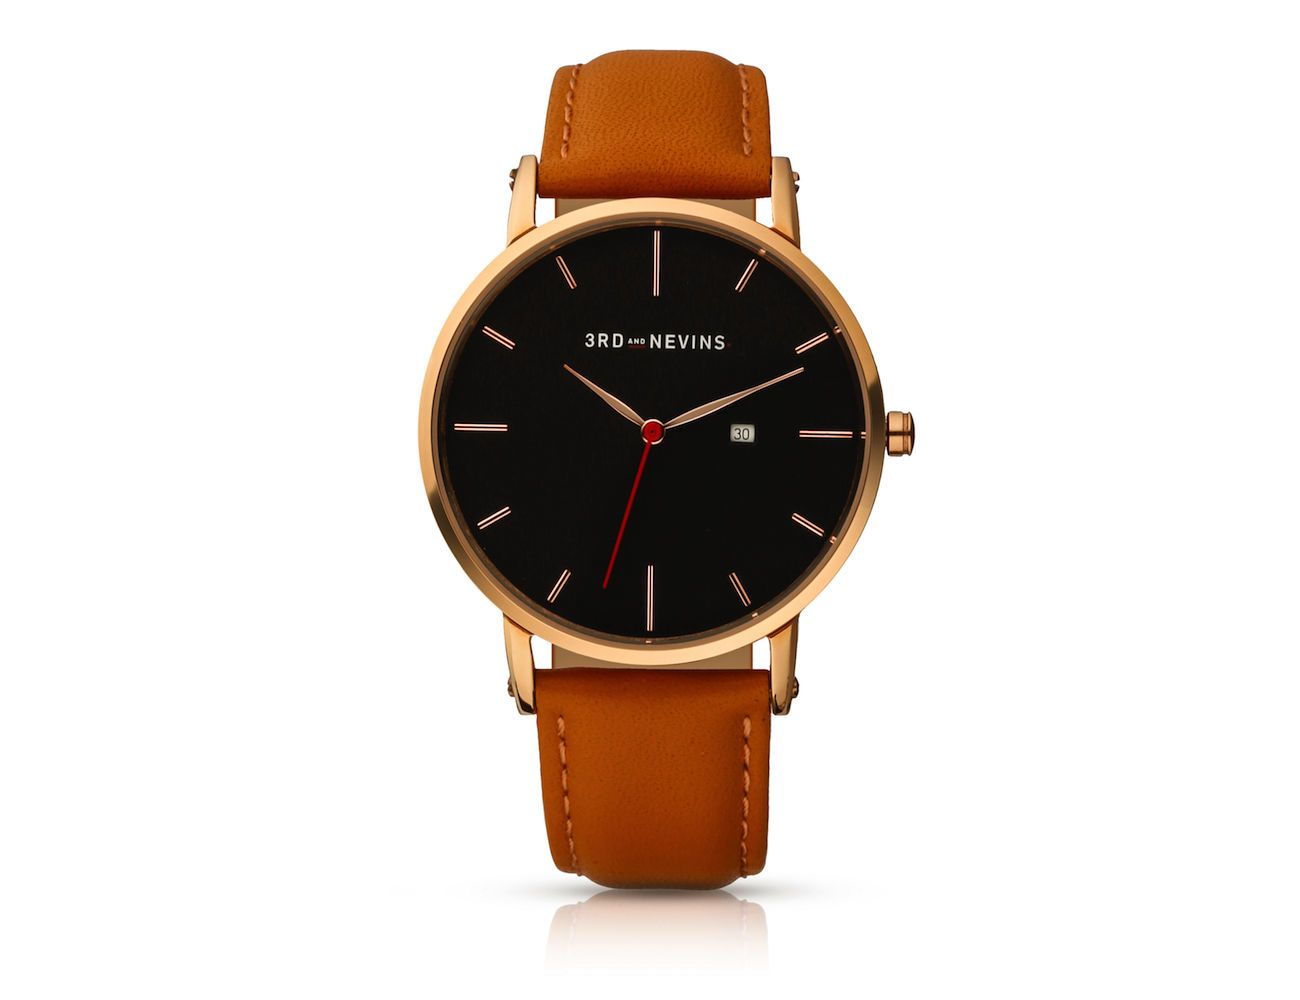 3RD AND NEVINS Chic Luxury Watch Collection